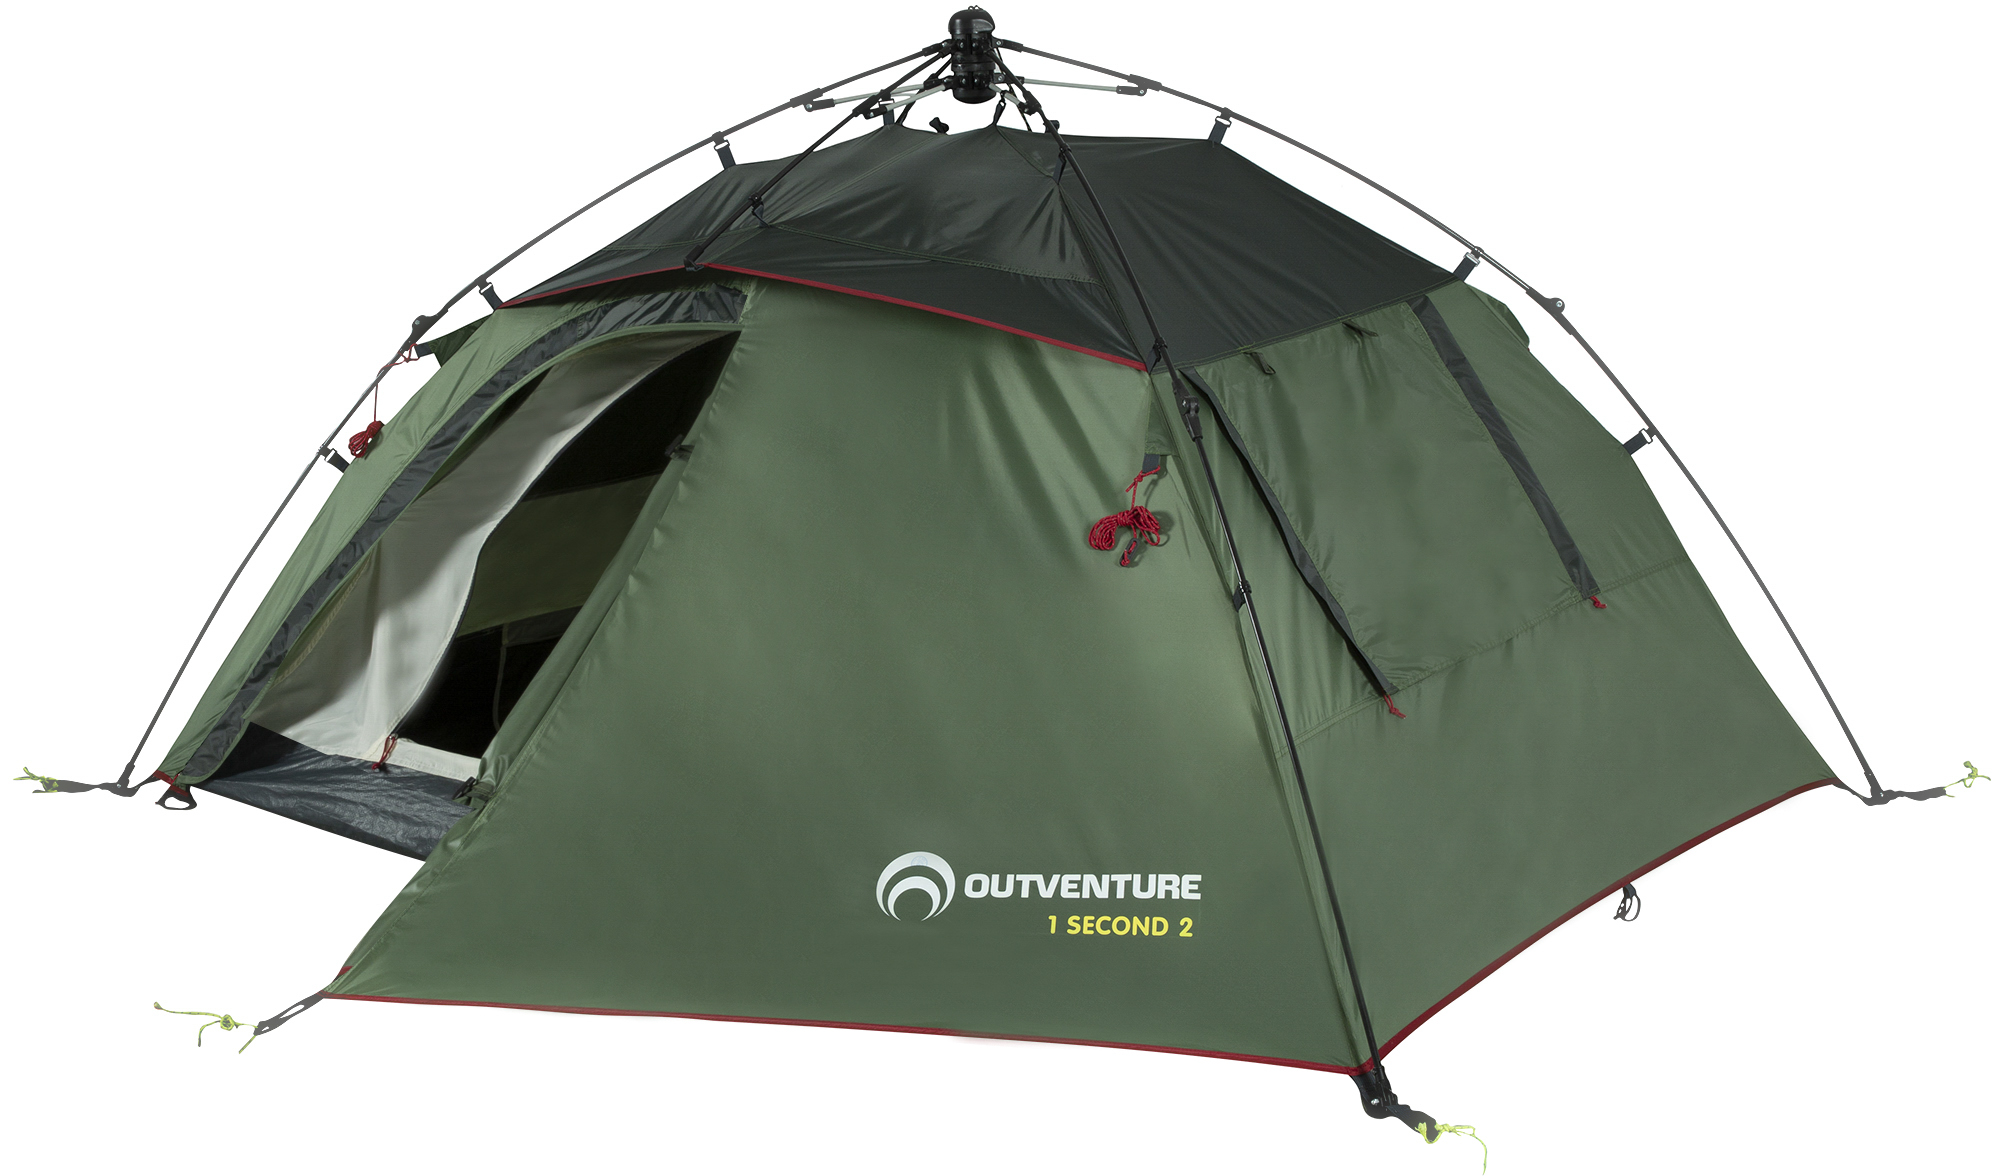 Outventure 1 SECOND TENT 2 стоимость